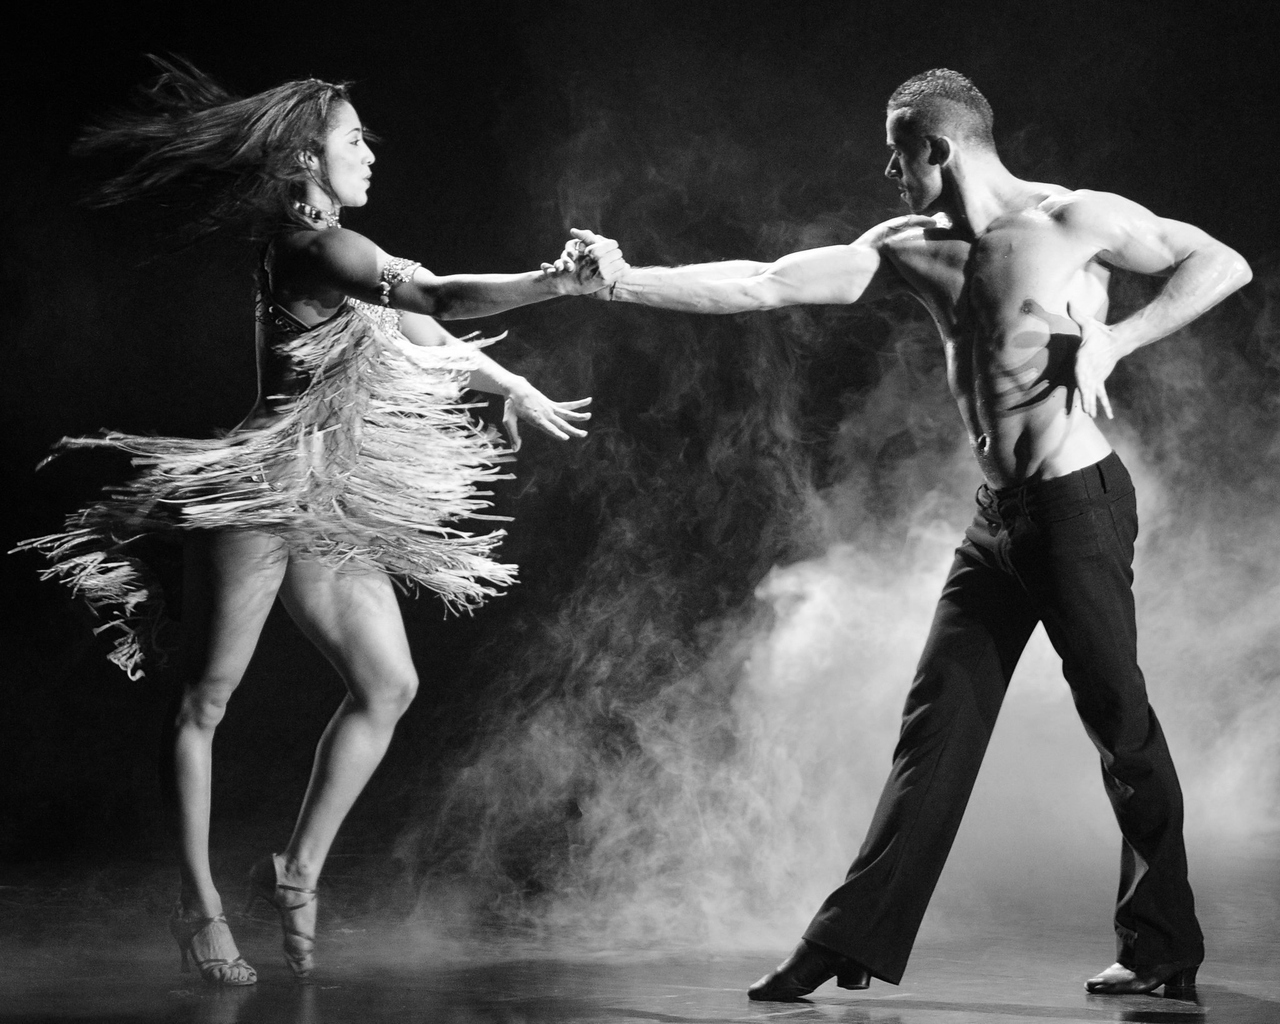 dating salsa dancer Best salsa dancers in the world just my own personal top ten countdown of who i think are the best dancers in the salsa scene don't agree tell us who you think are the best in the comments.